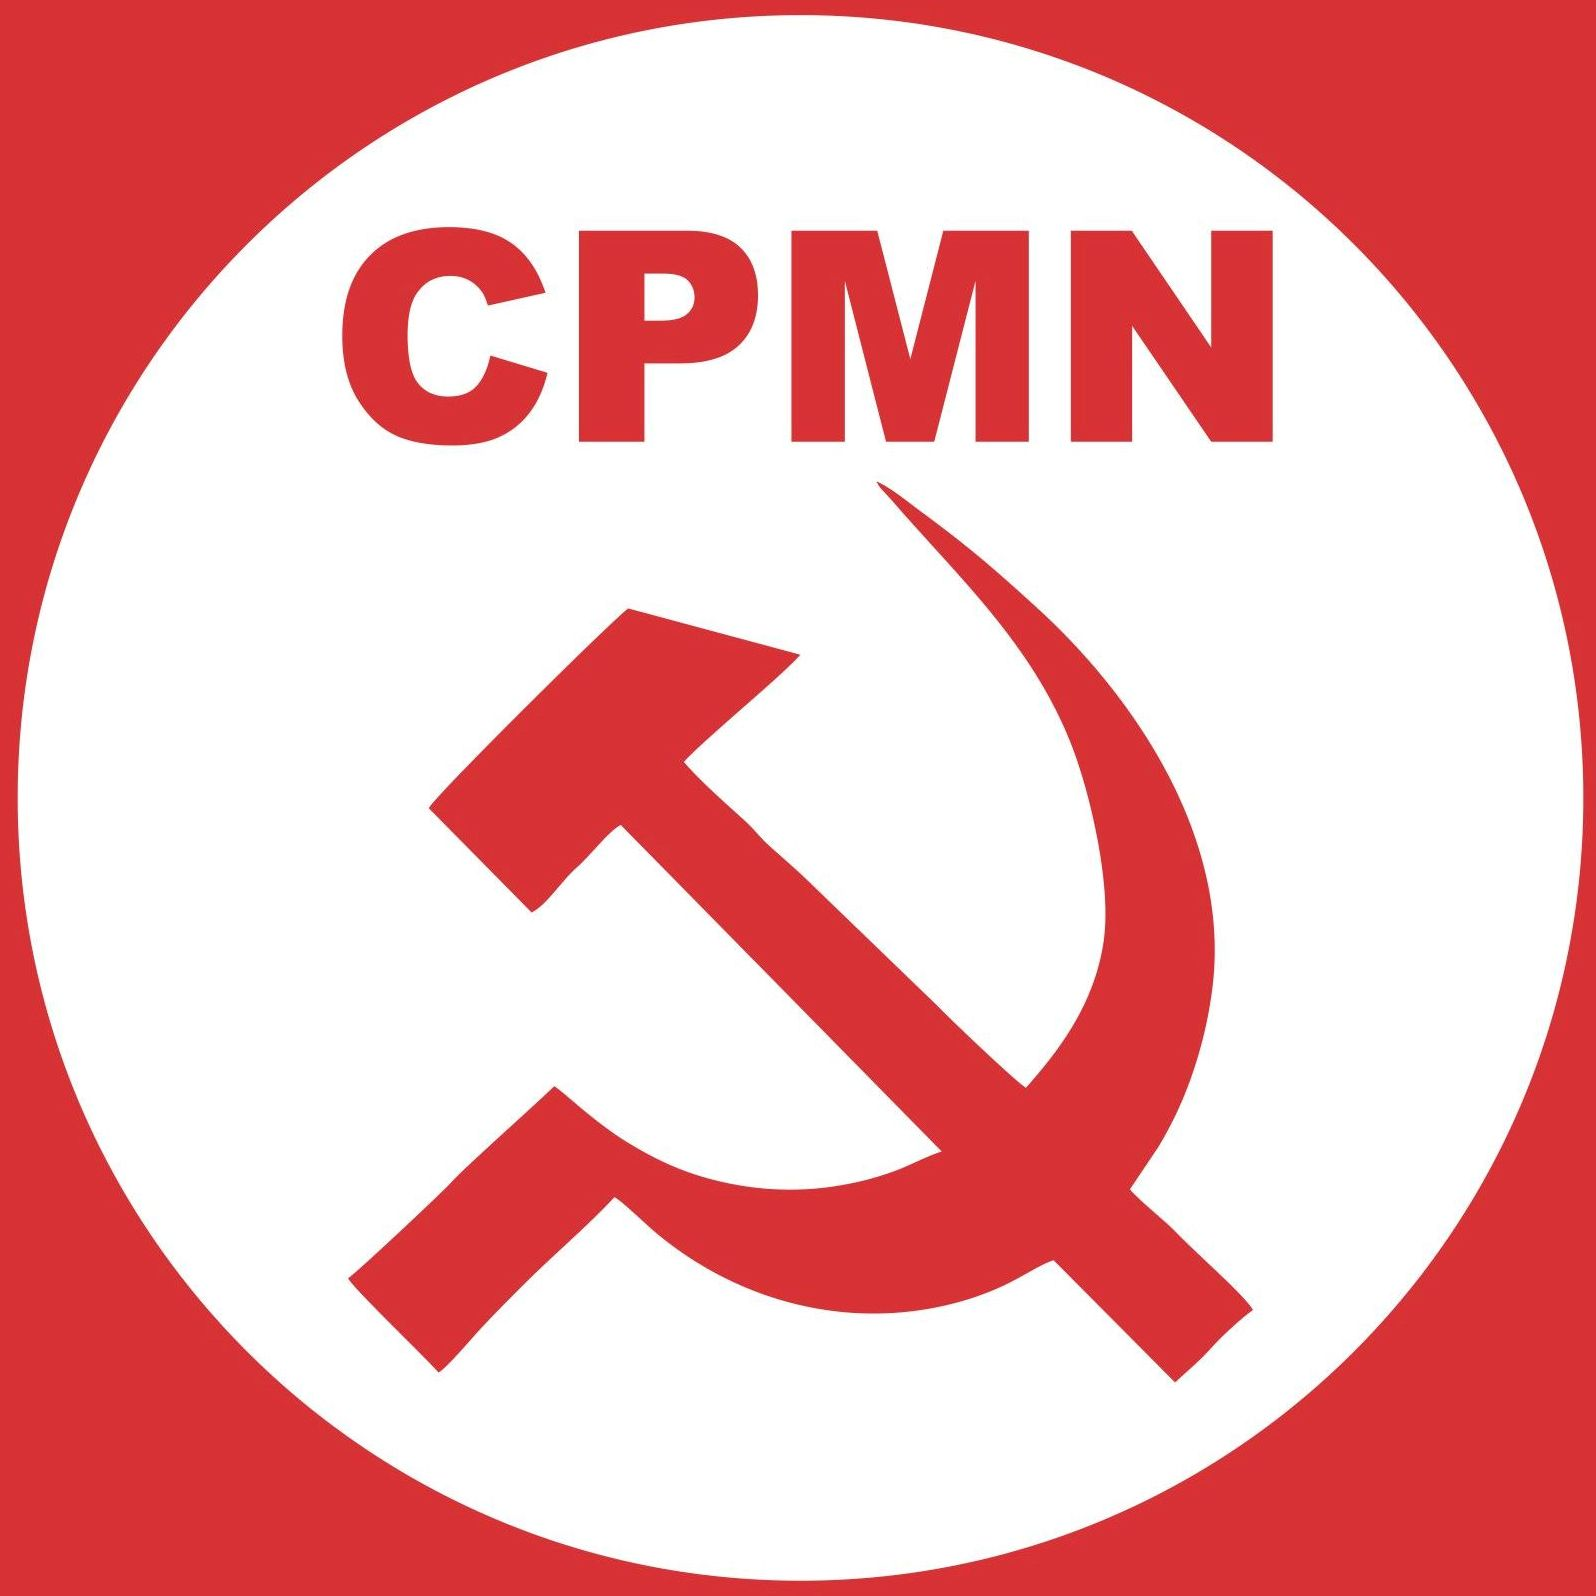 communist party of india 2 days ago  communist party of india (cpi) is a communist party in india it was formed on 26  december 1925 at the first party conference in kanpur.